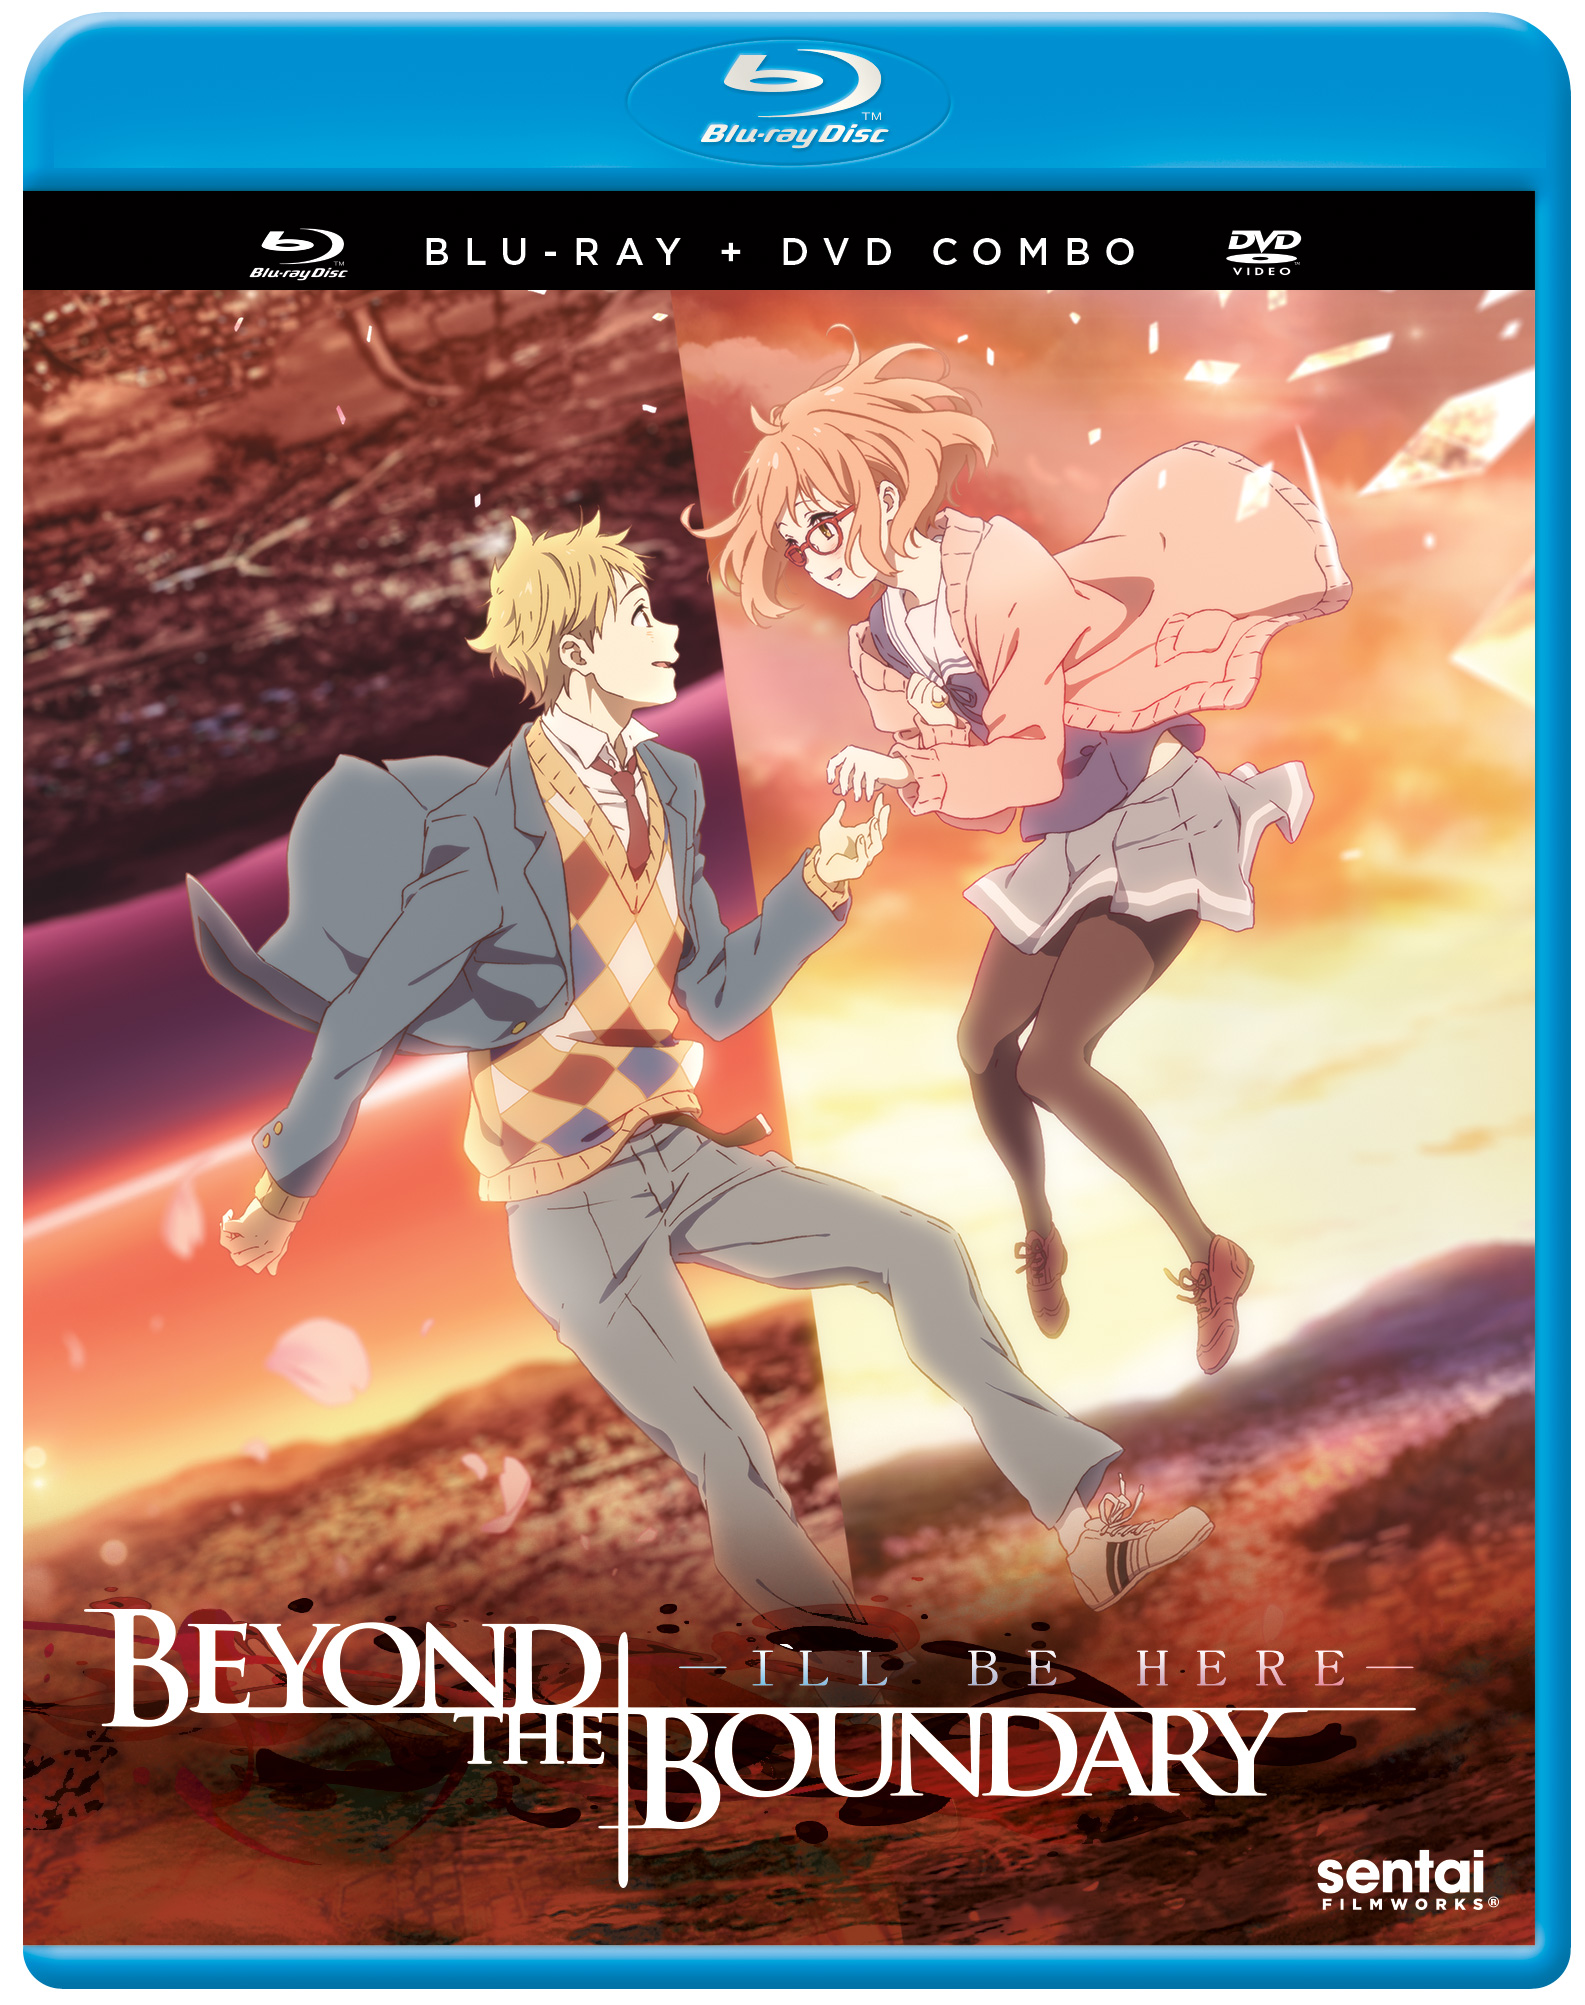 Beyond the Boundary I'LL BE HERE Blu-ray/DVD 816726029306